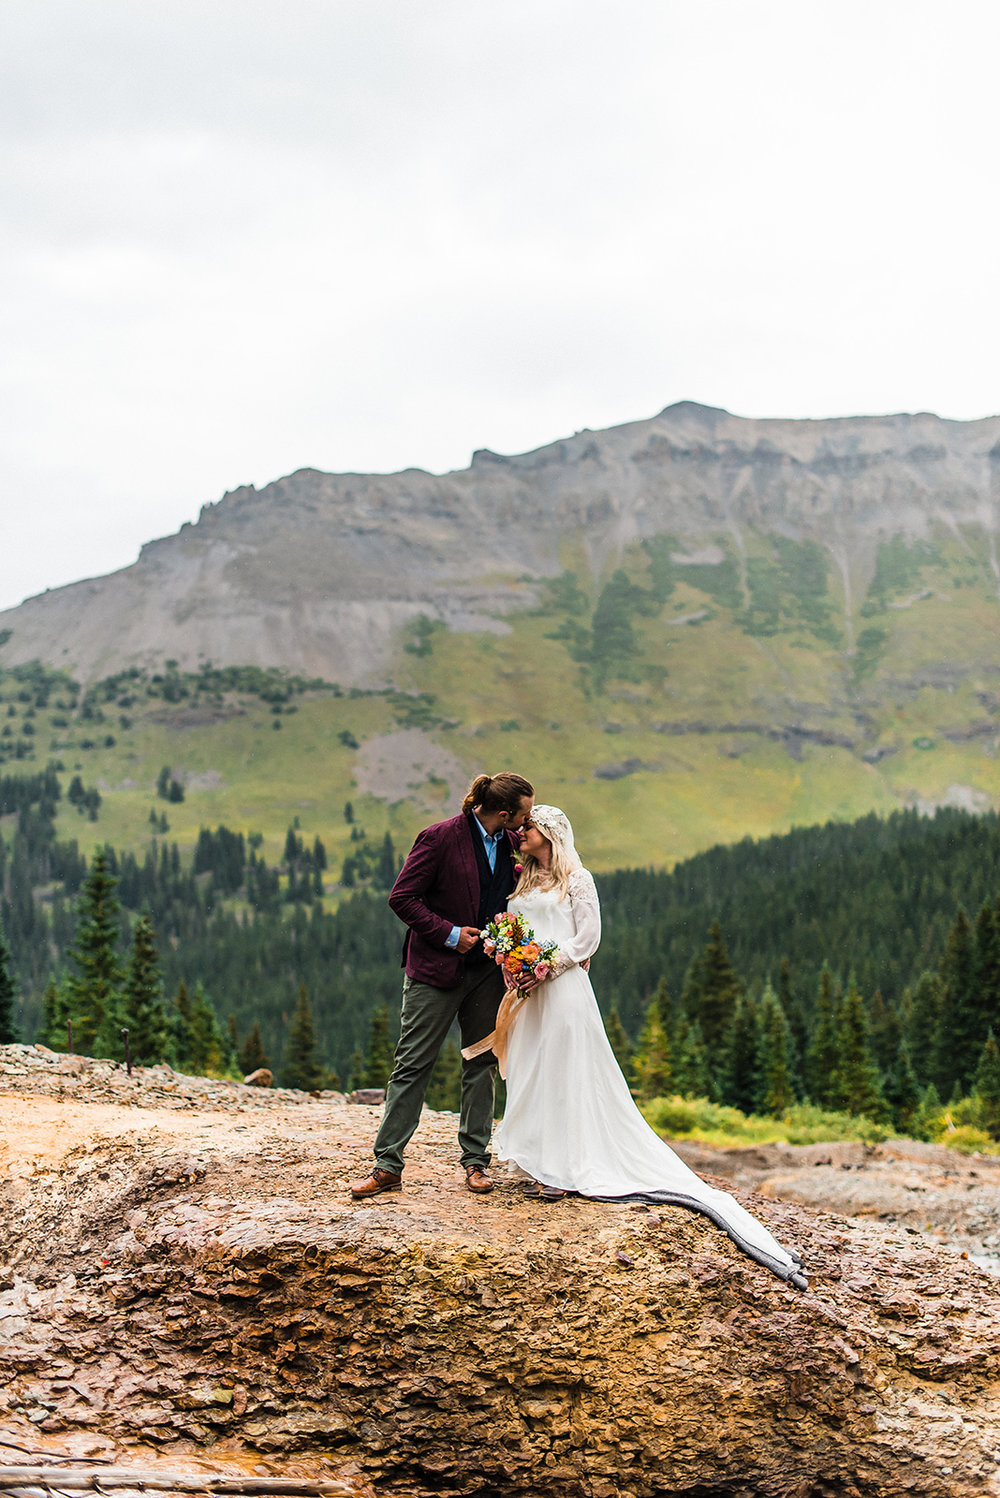 Hayle | Ouray, Colorado | August 2018 | The Foxes Photography